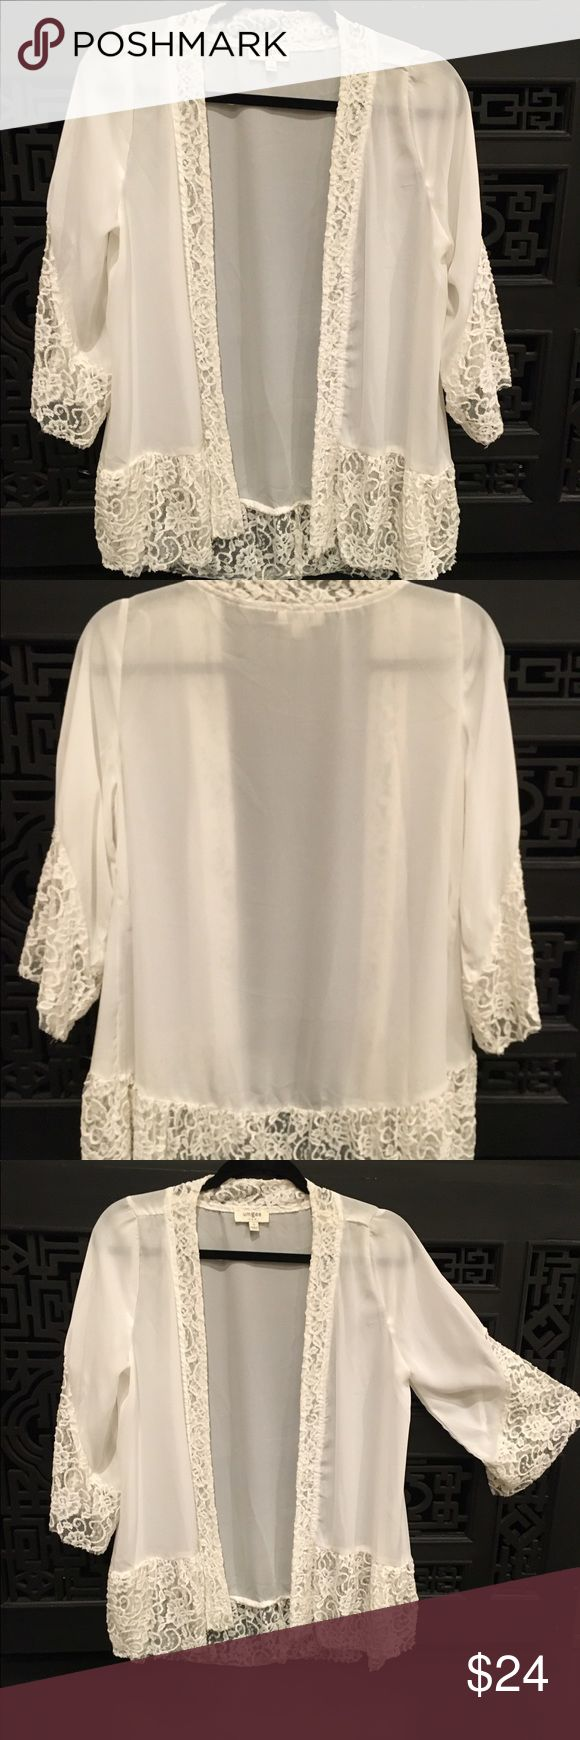 Umgee brand kimona Great piece, semi-sheer with lace accents, never worn Umgee Other